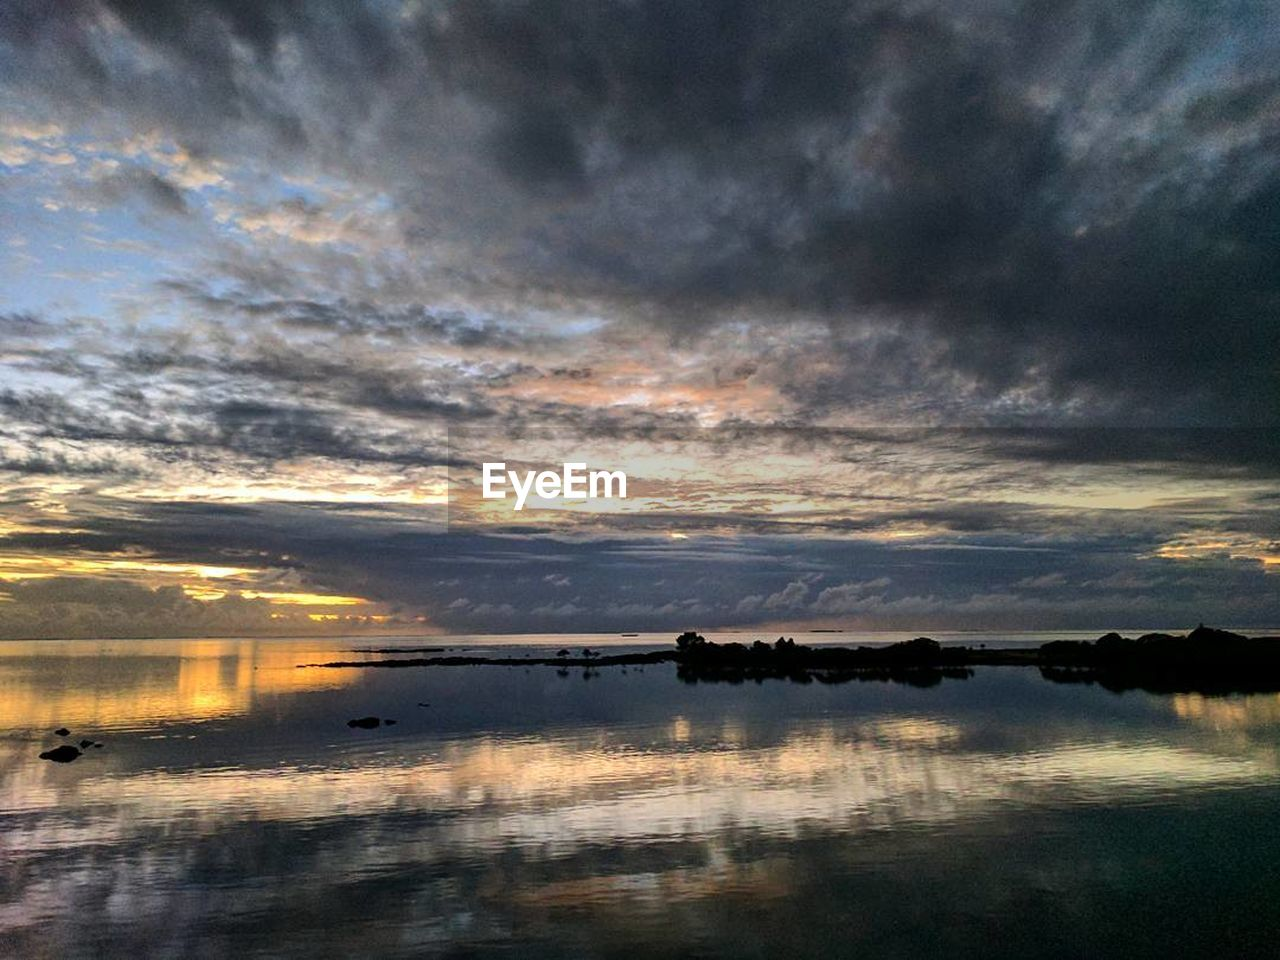 sunset, reflection, cloud - sky, sky, water, beauty in nature, tranquil scene, scenics, tranquility, nature, dramatic sky, silhouette, outdoors, waterfront, no people, lake, nautical vessel, day